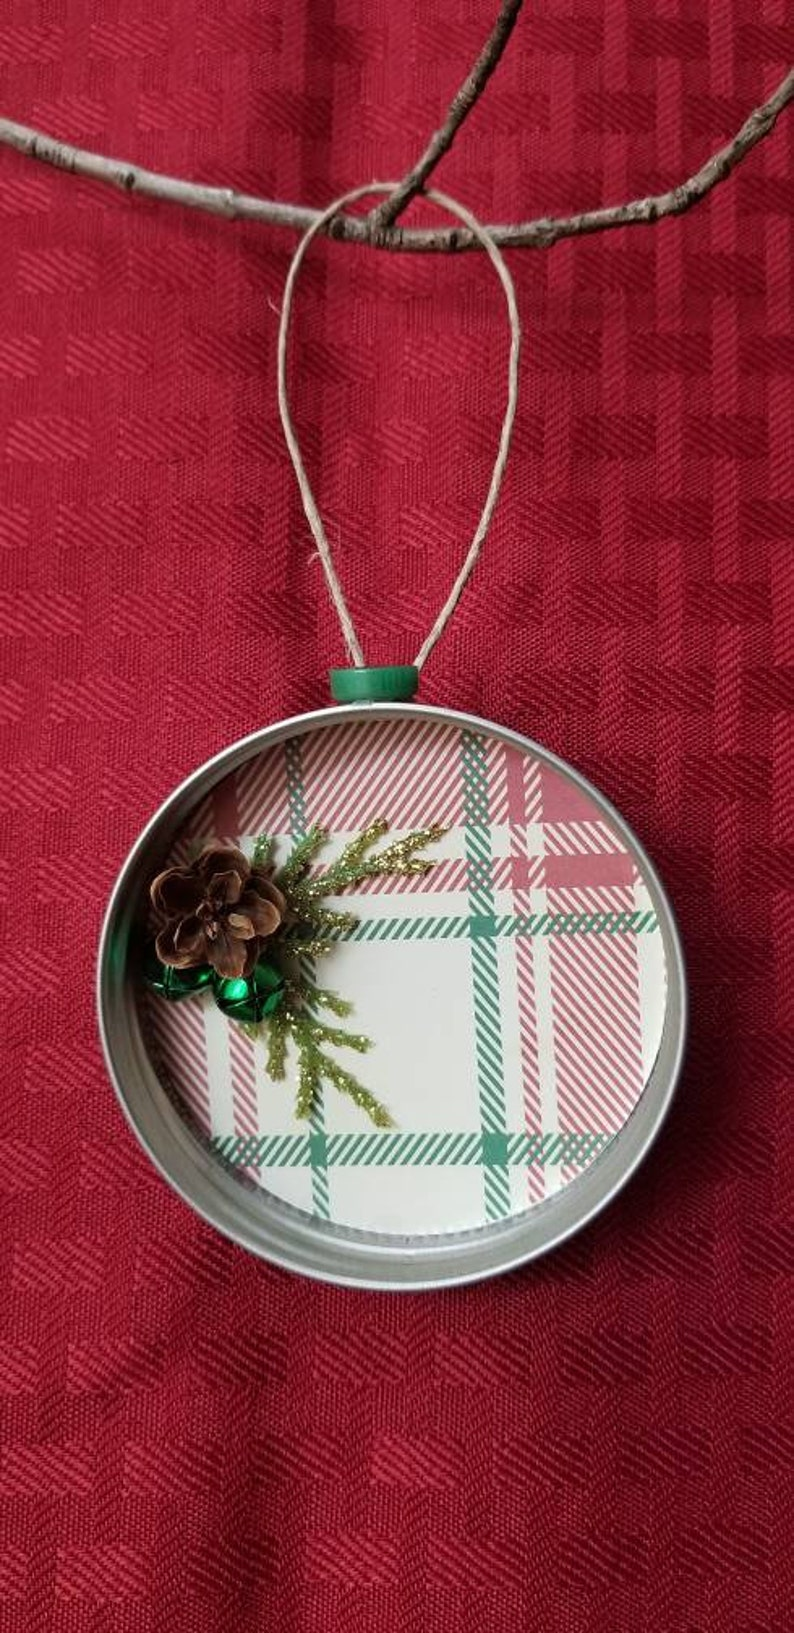 Mason Jar Lid Holiday Ornament with Real NH Hemlock Pinecone and Glittered Branch and Bell Accents